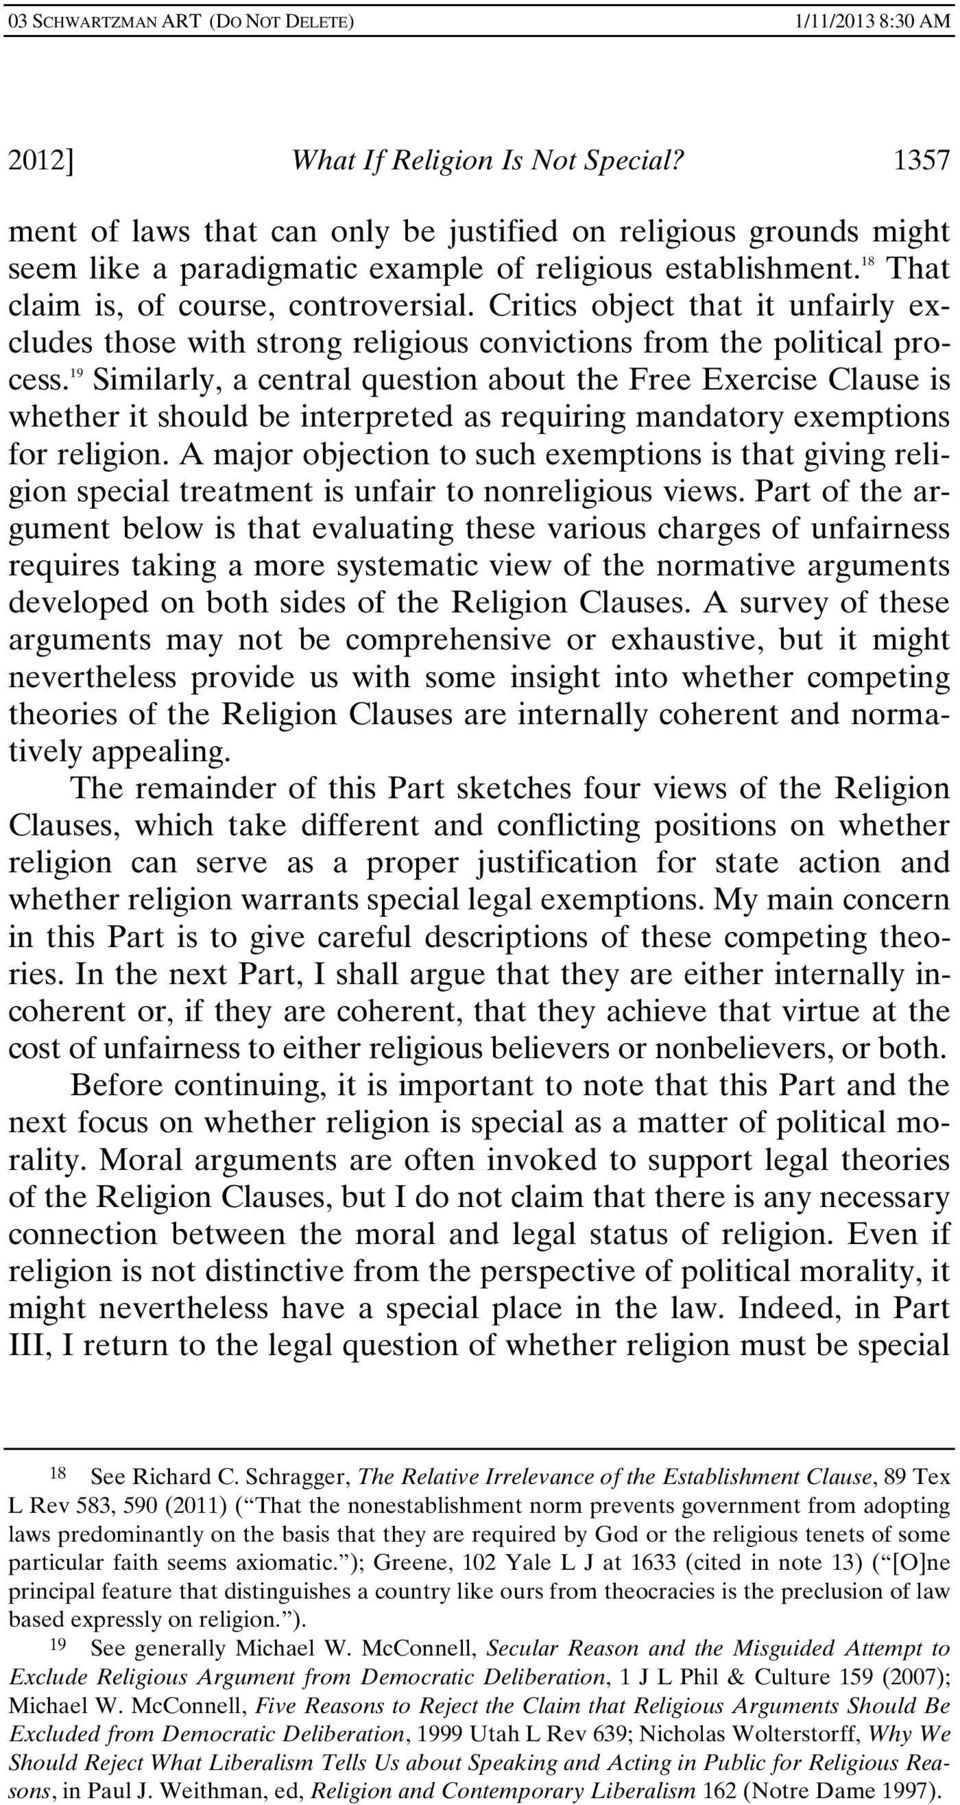 19 Similarly, a central question about the Free Exercise Clause is whether it should be interpreted as requiring mandatory exemptions for religion.